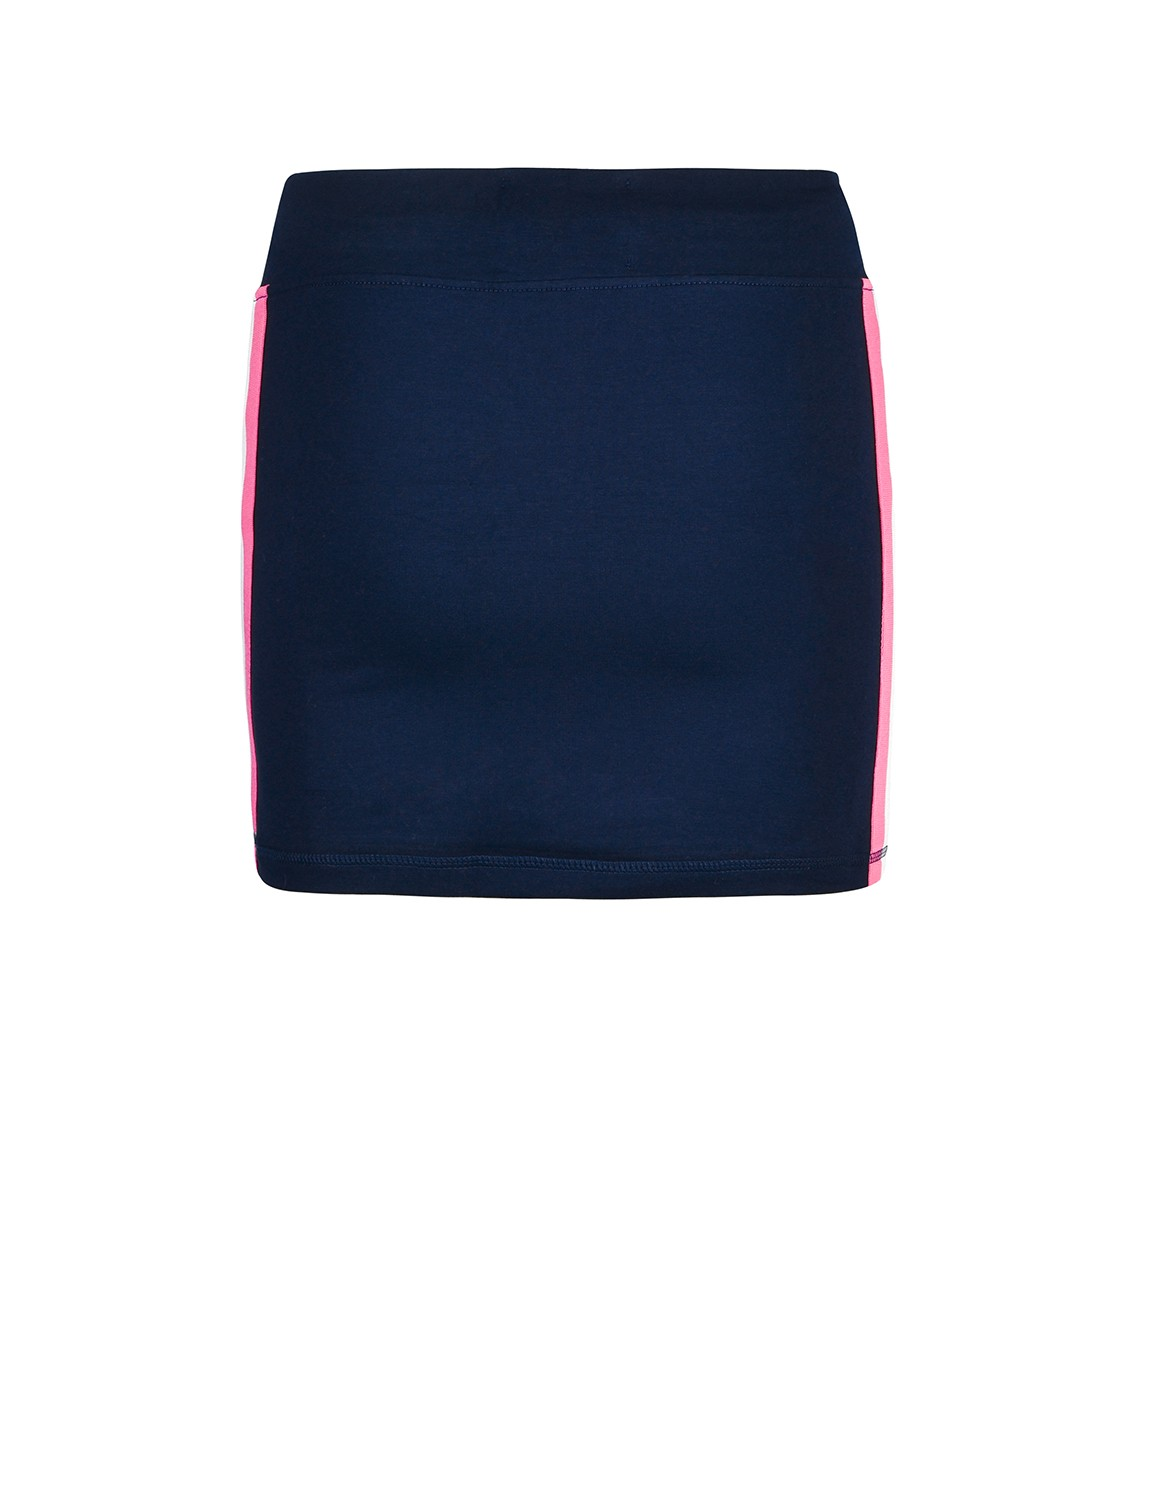 Fabulous RedSkirt Dark Blue